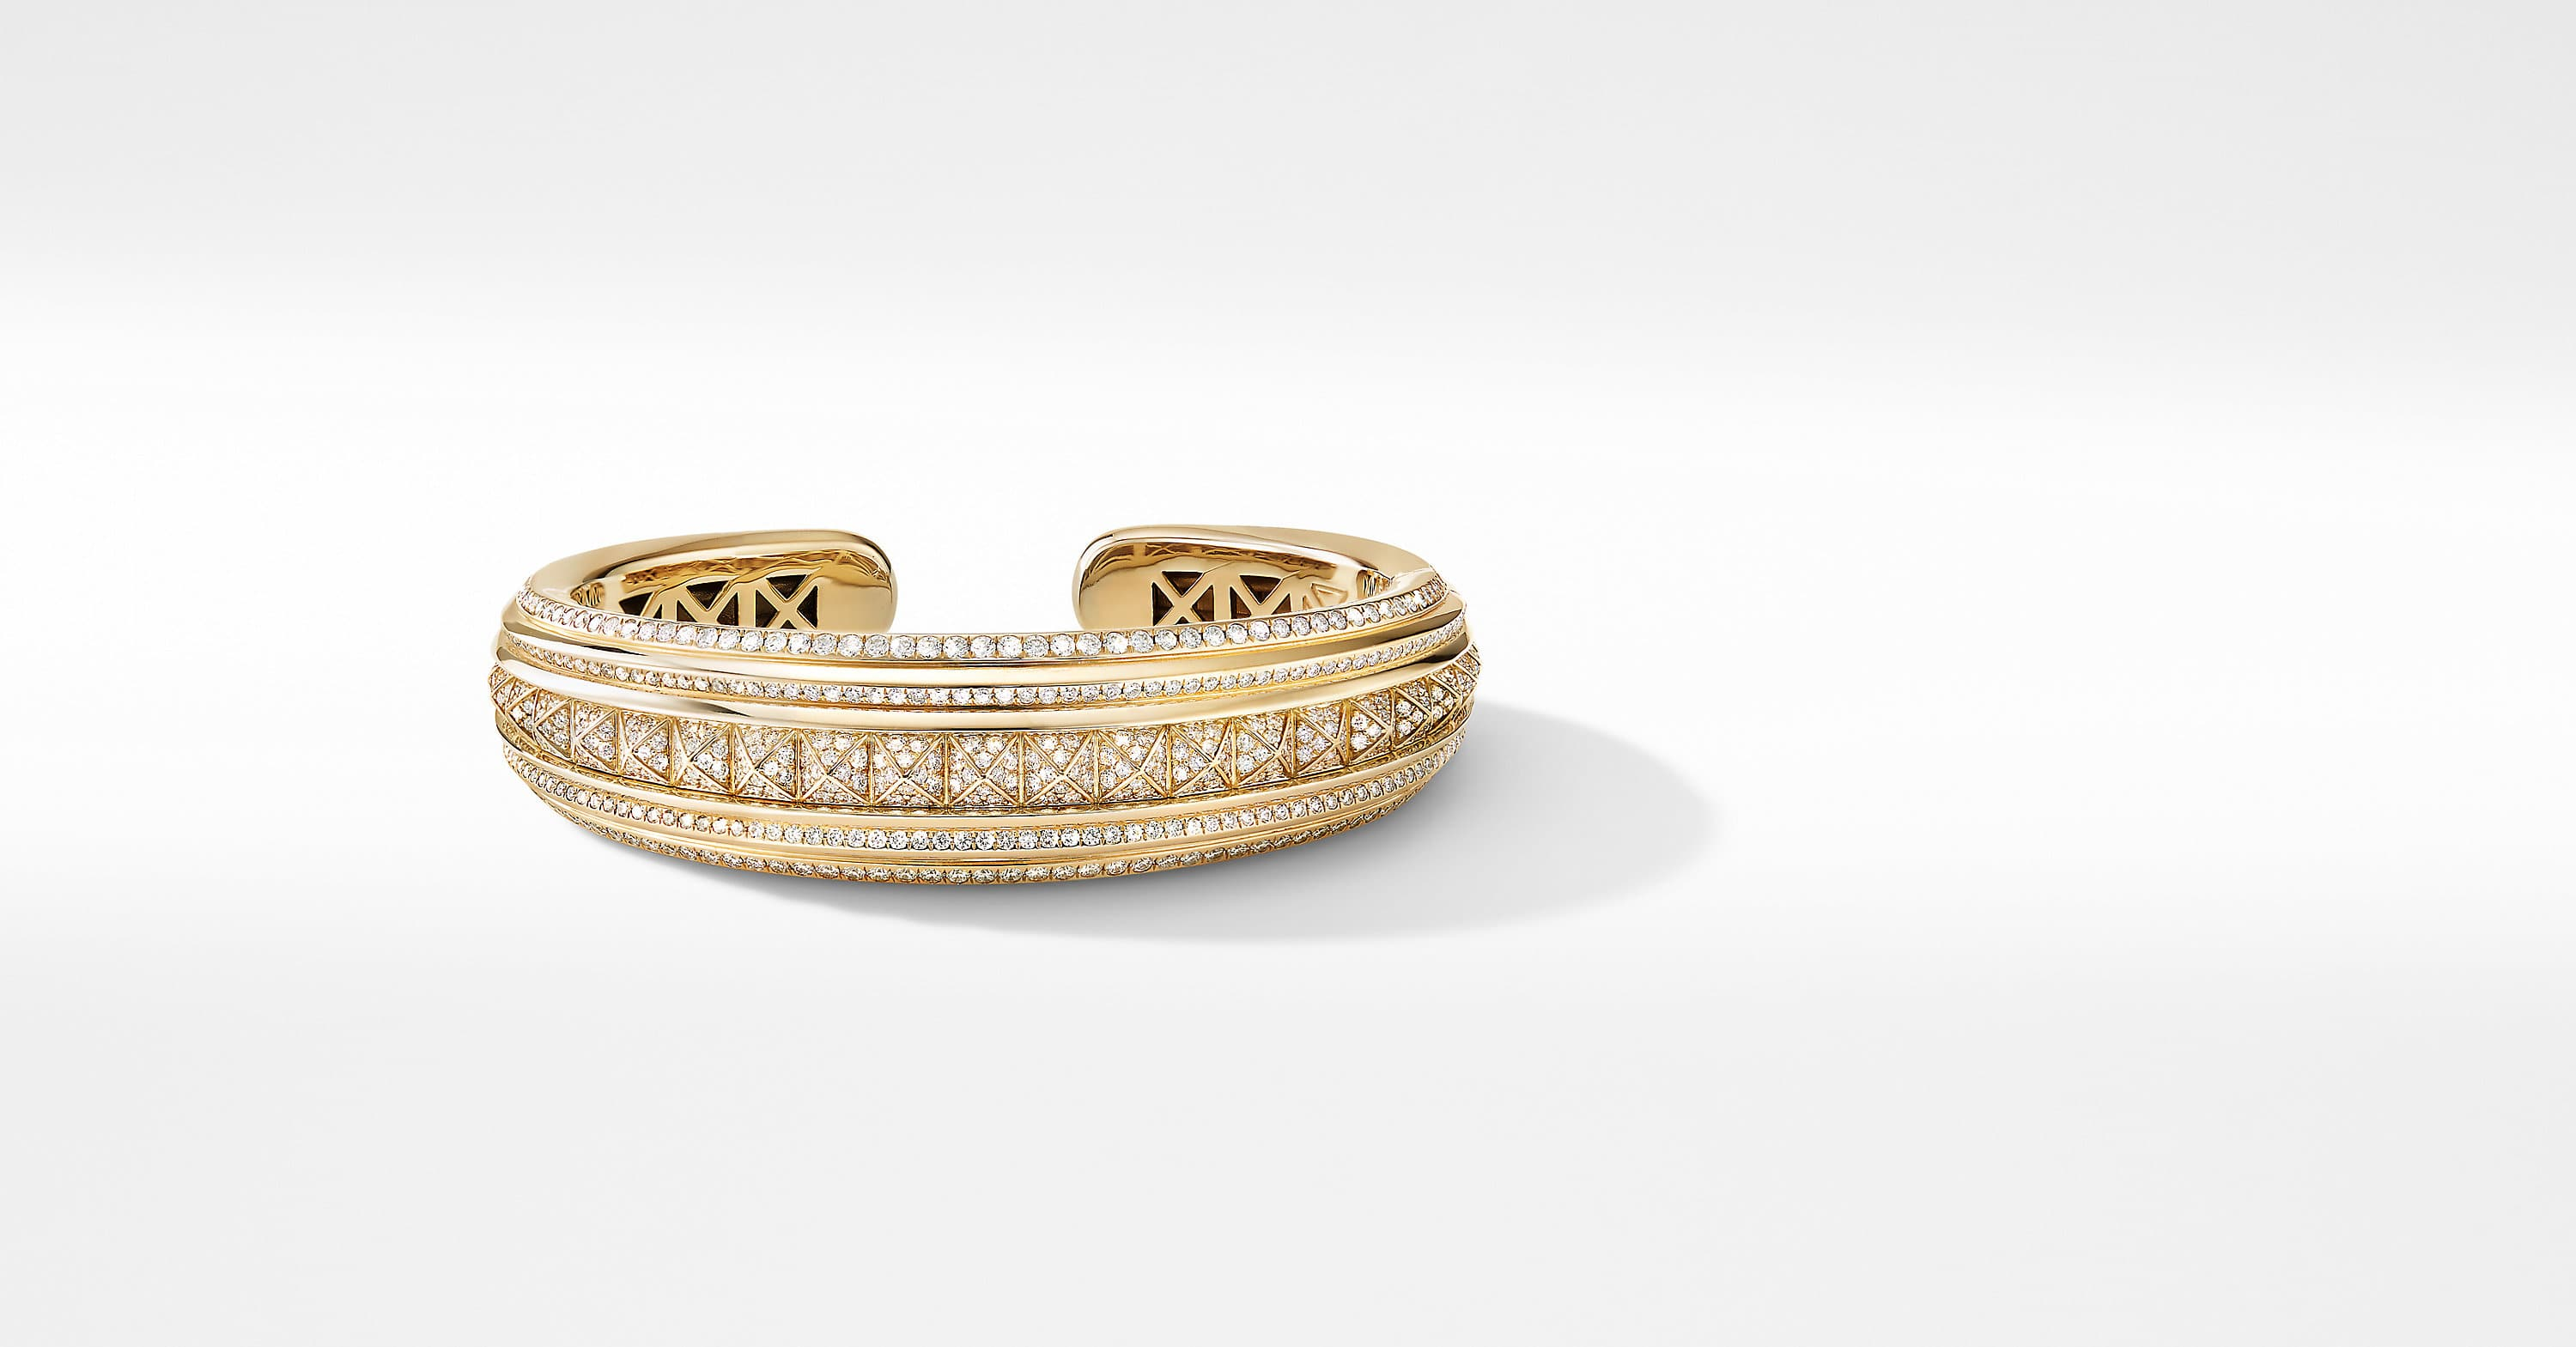 Bold Modern Renaissance Bracelet in 18K Yellow Gold with Full Pavé